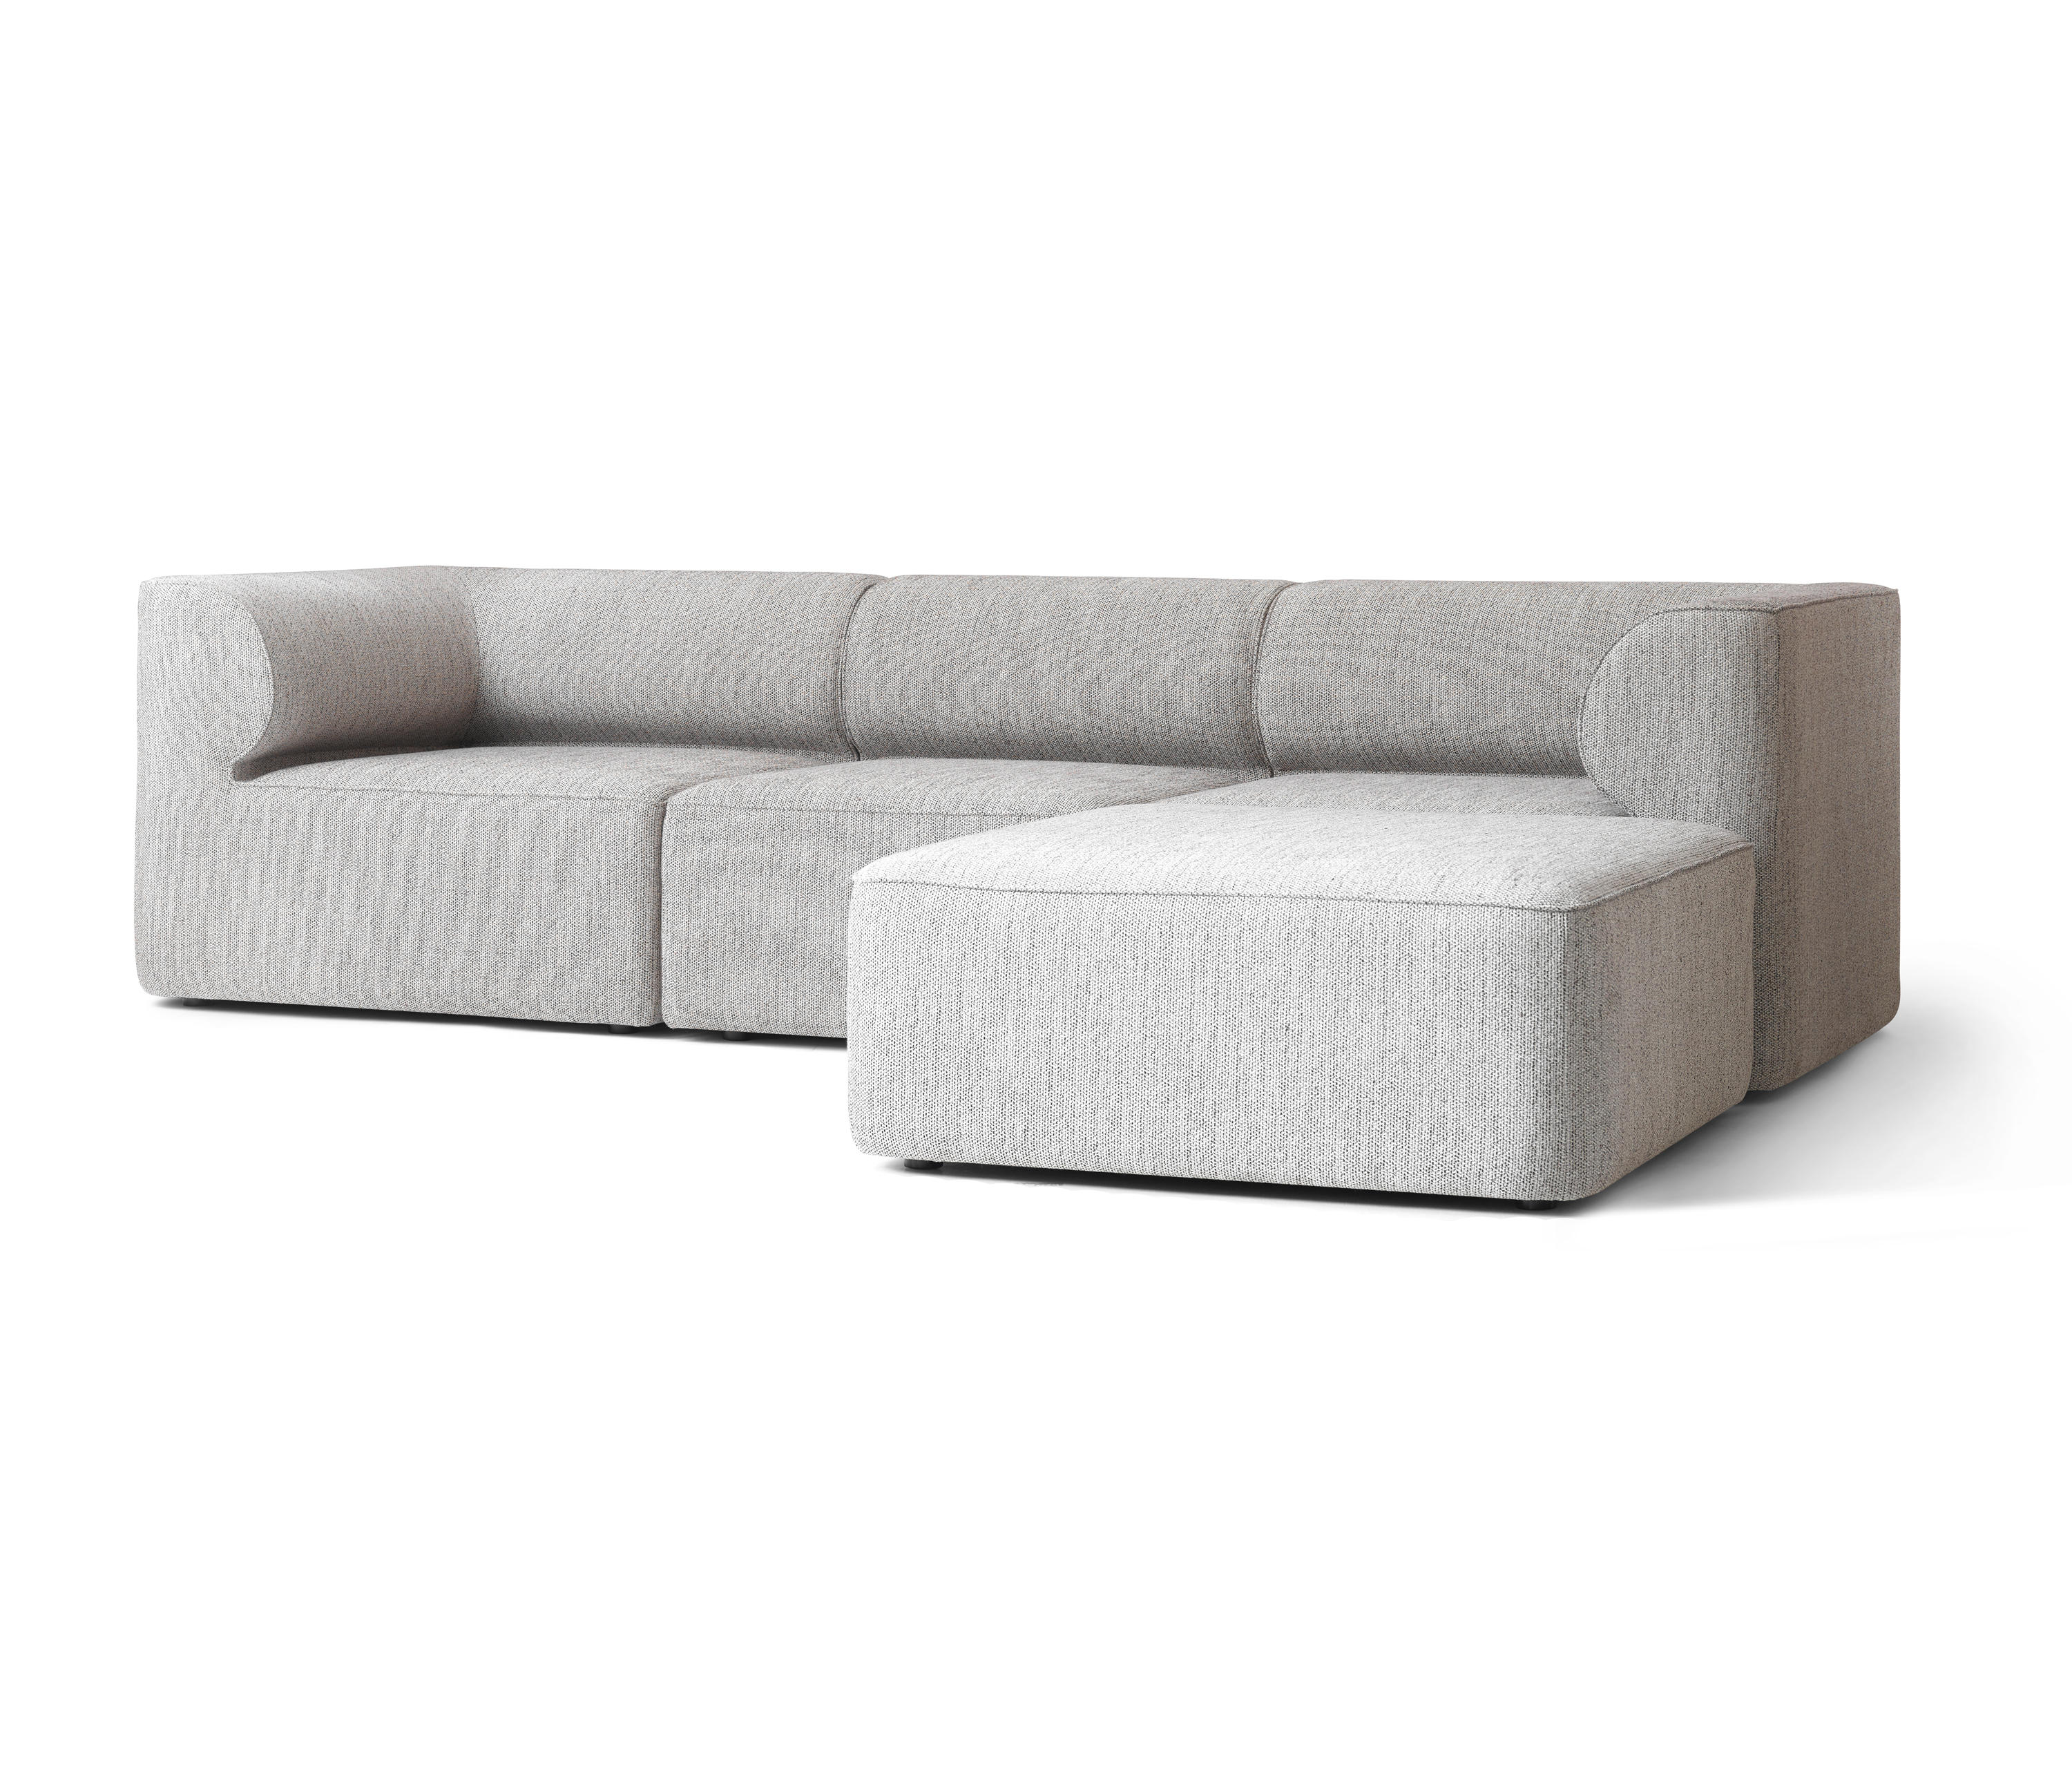 Modular Furniture Sofa: MODULE - Sofas From MENU